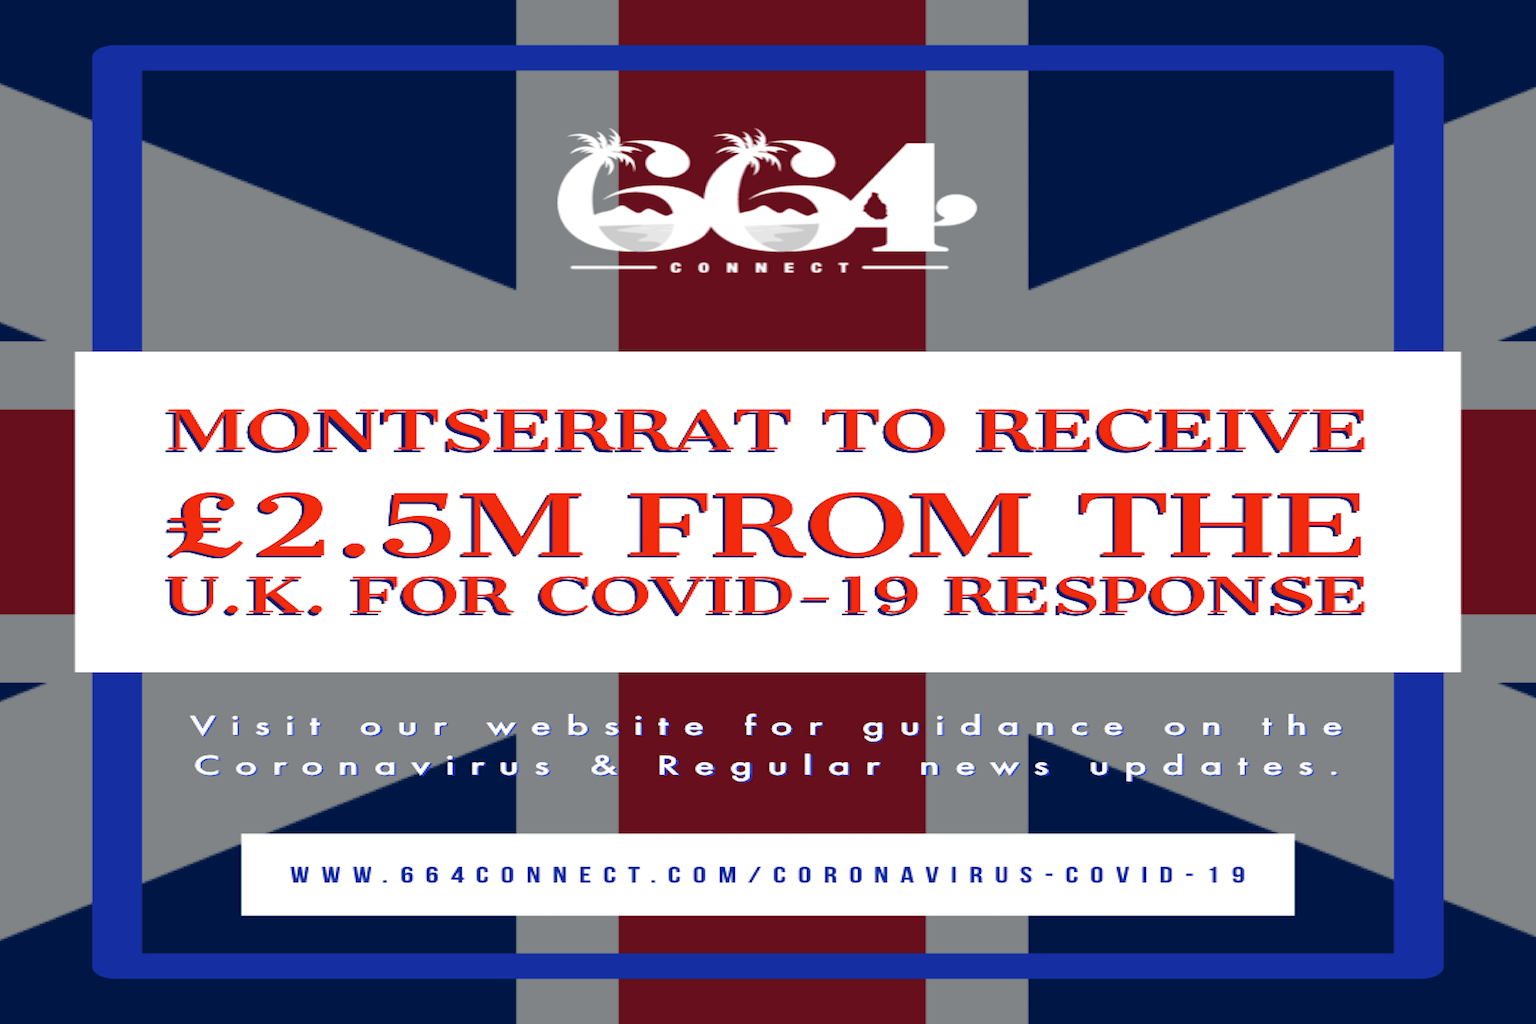 Montserrat to receive £2.5M from the UK for COVID-19 Response